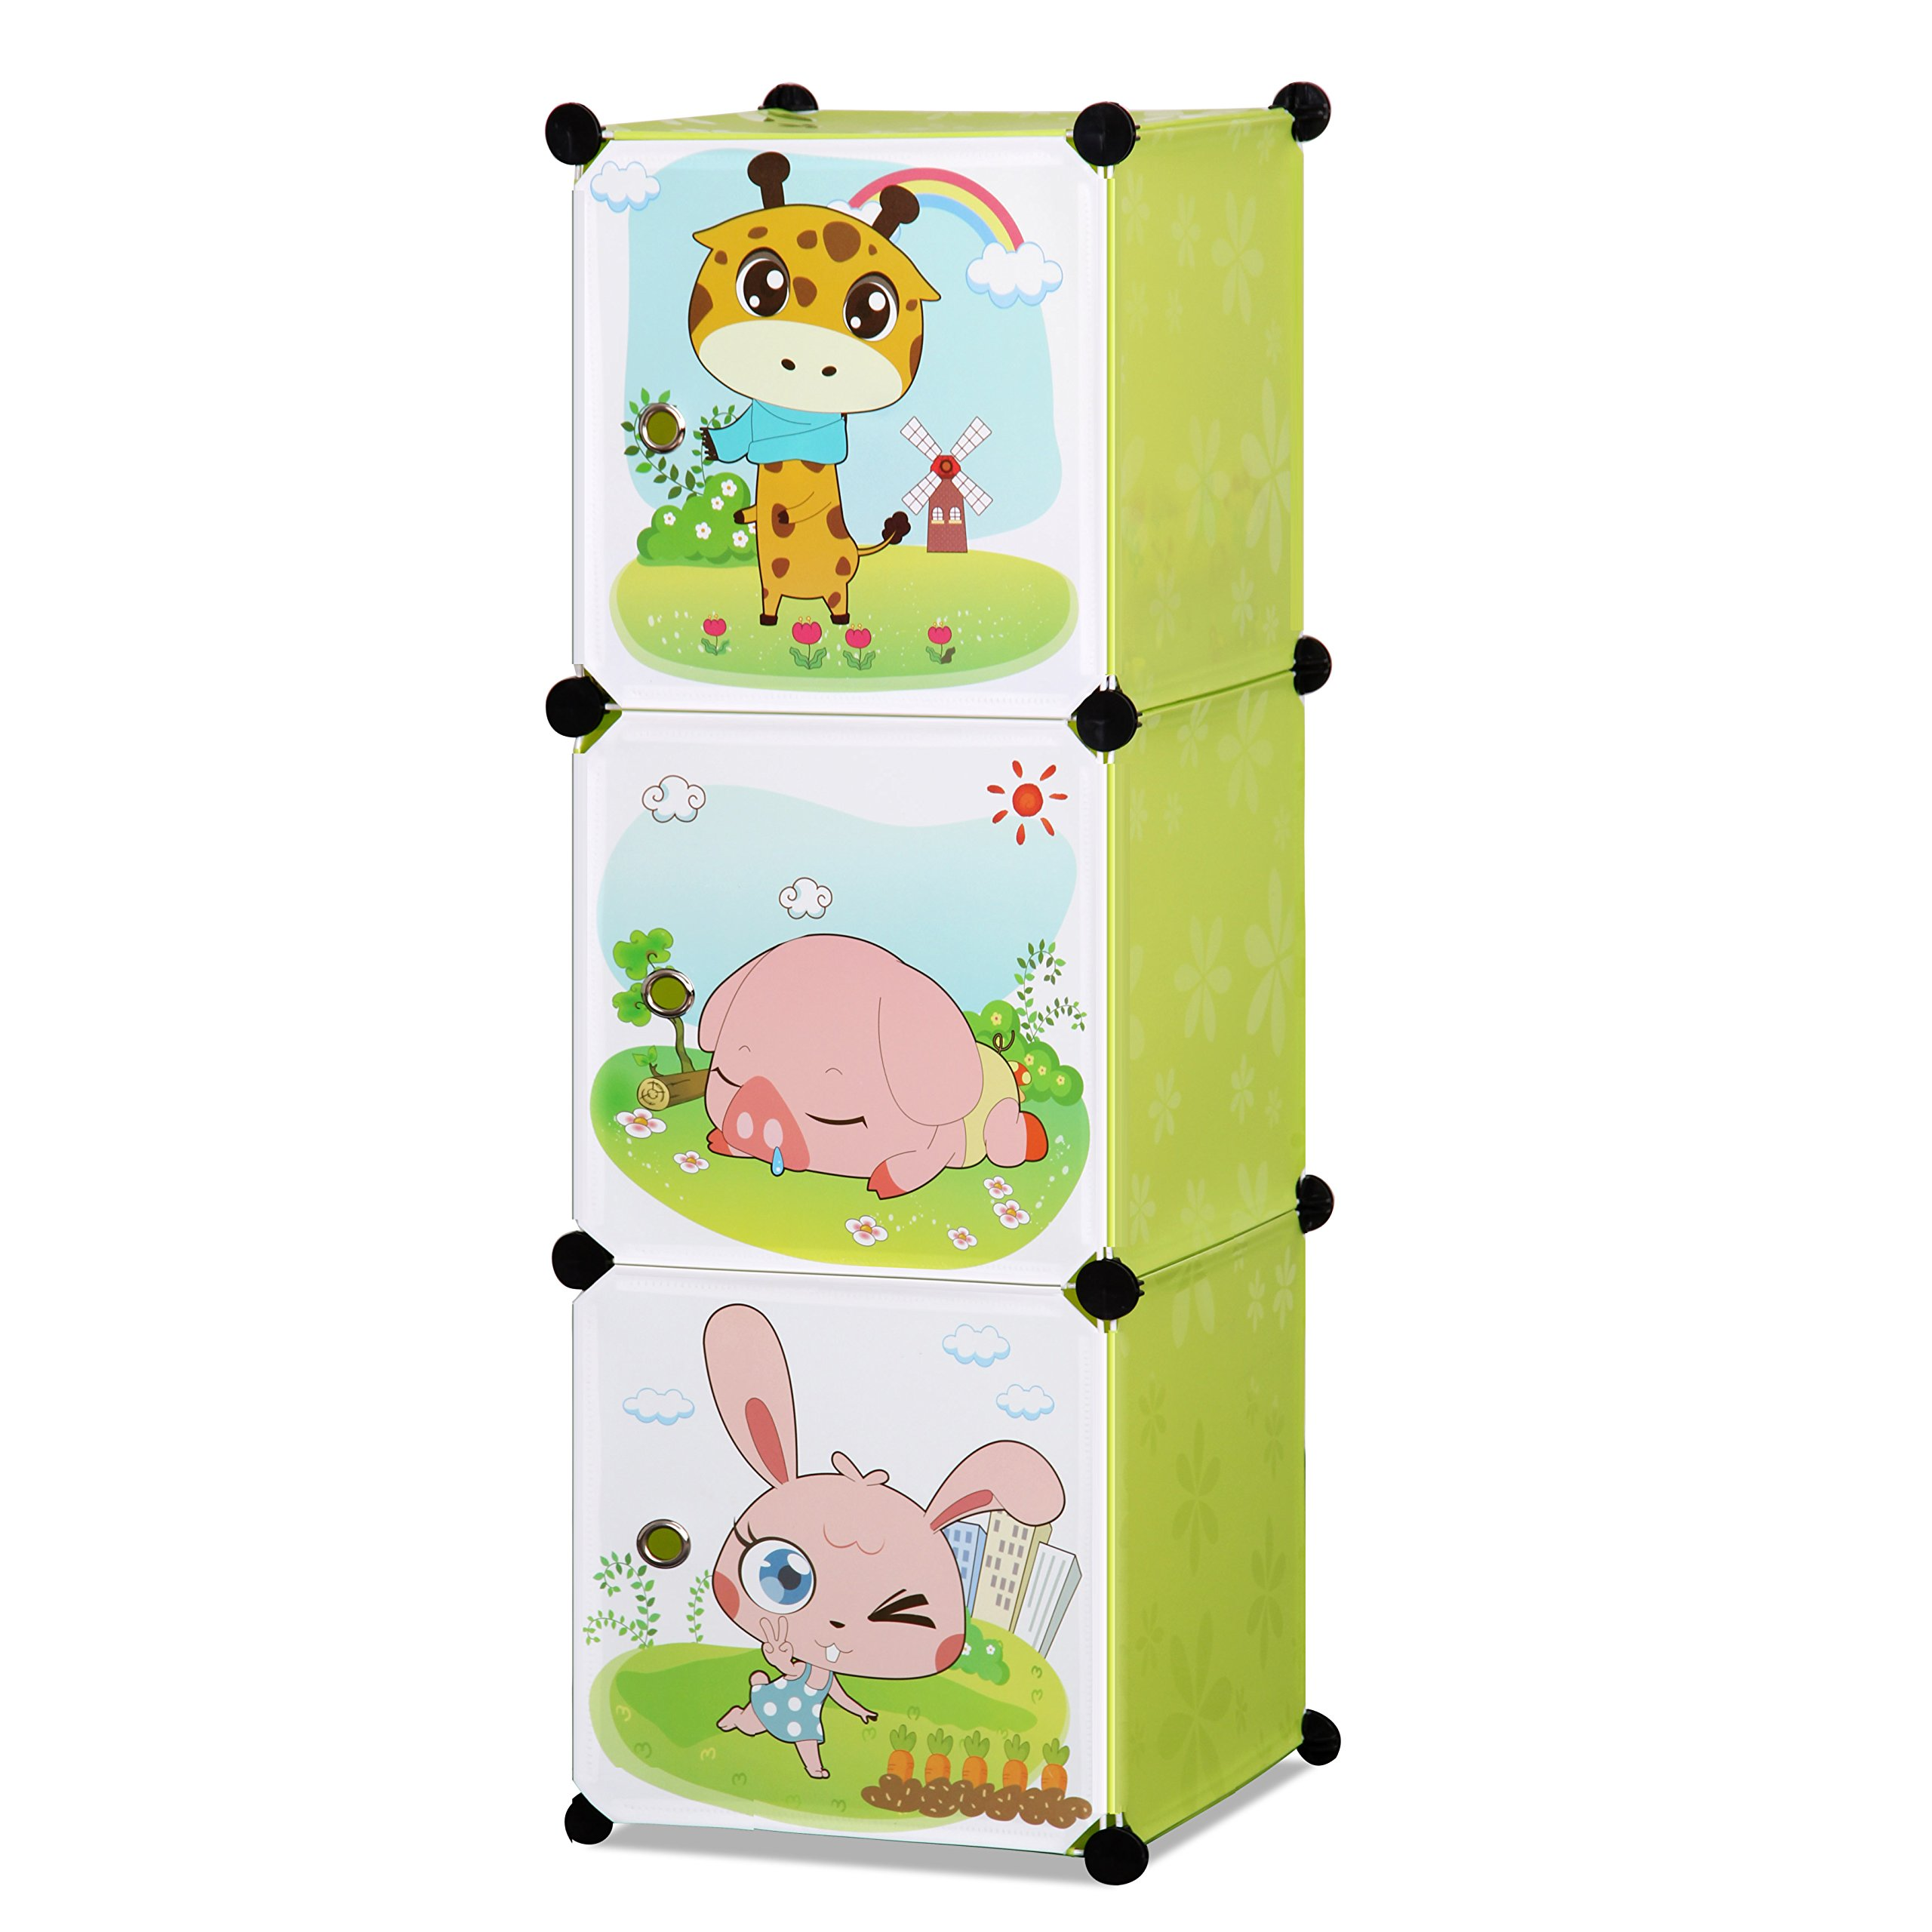 ALEKO SCAB02GR Whimsical Children's 3 Level Collapsible Multipurpose Animal Themed Storage Organizer Cubes in Green by ALEKO